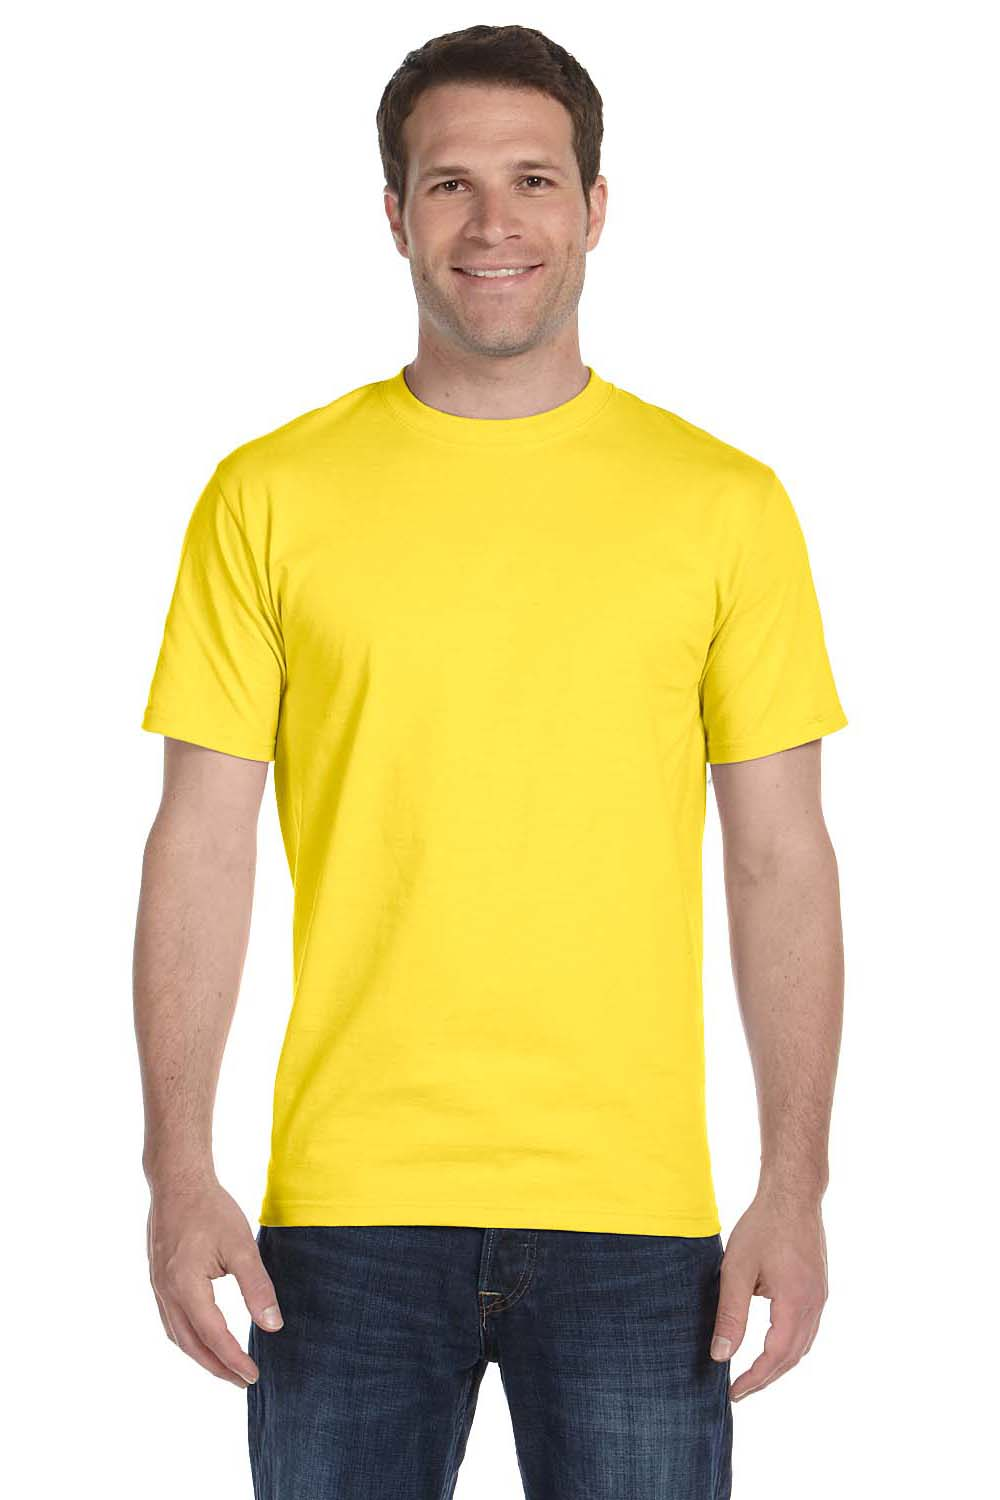 Hanes 5180 Mens Beefy-T Short Sleeve Crewneck T-Shirt Yellow Front